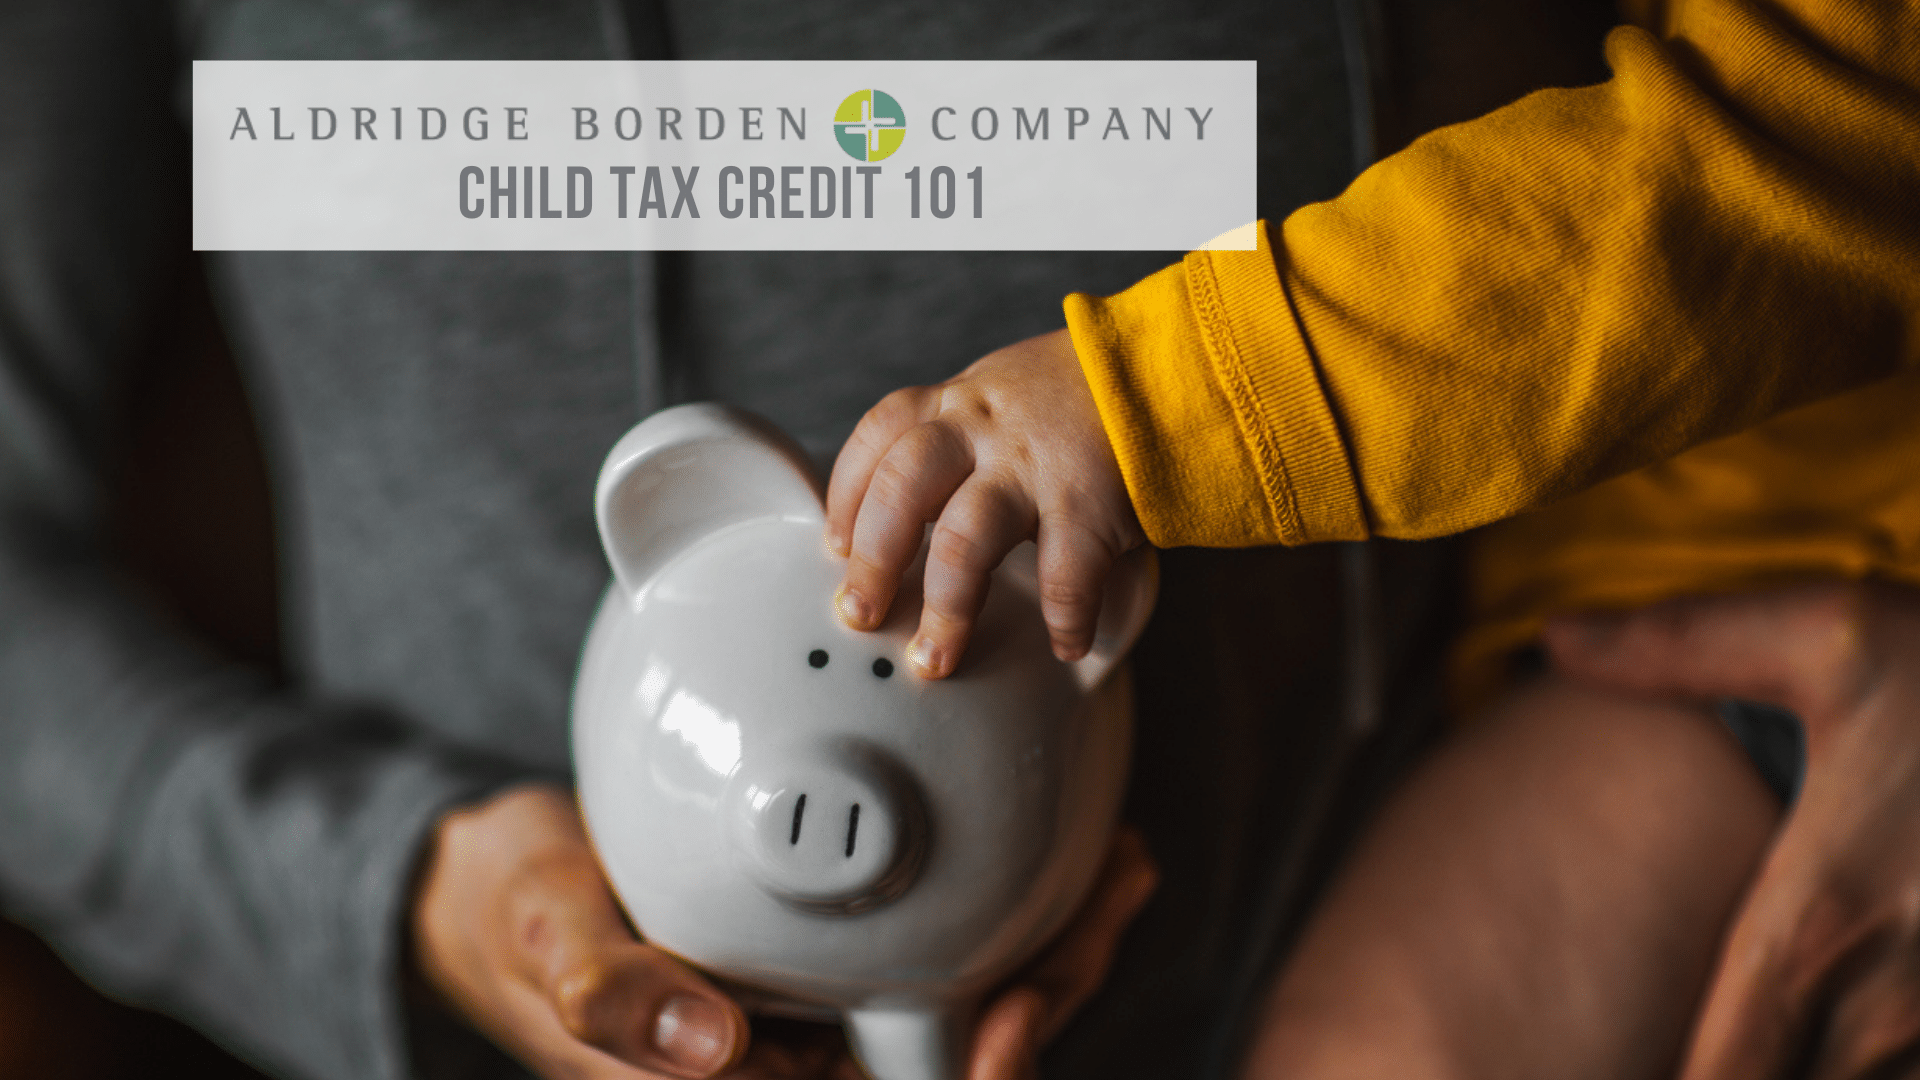 Child Tax Credit 101 – What You Need To Know